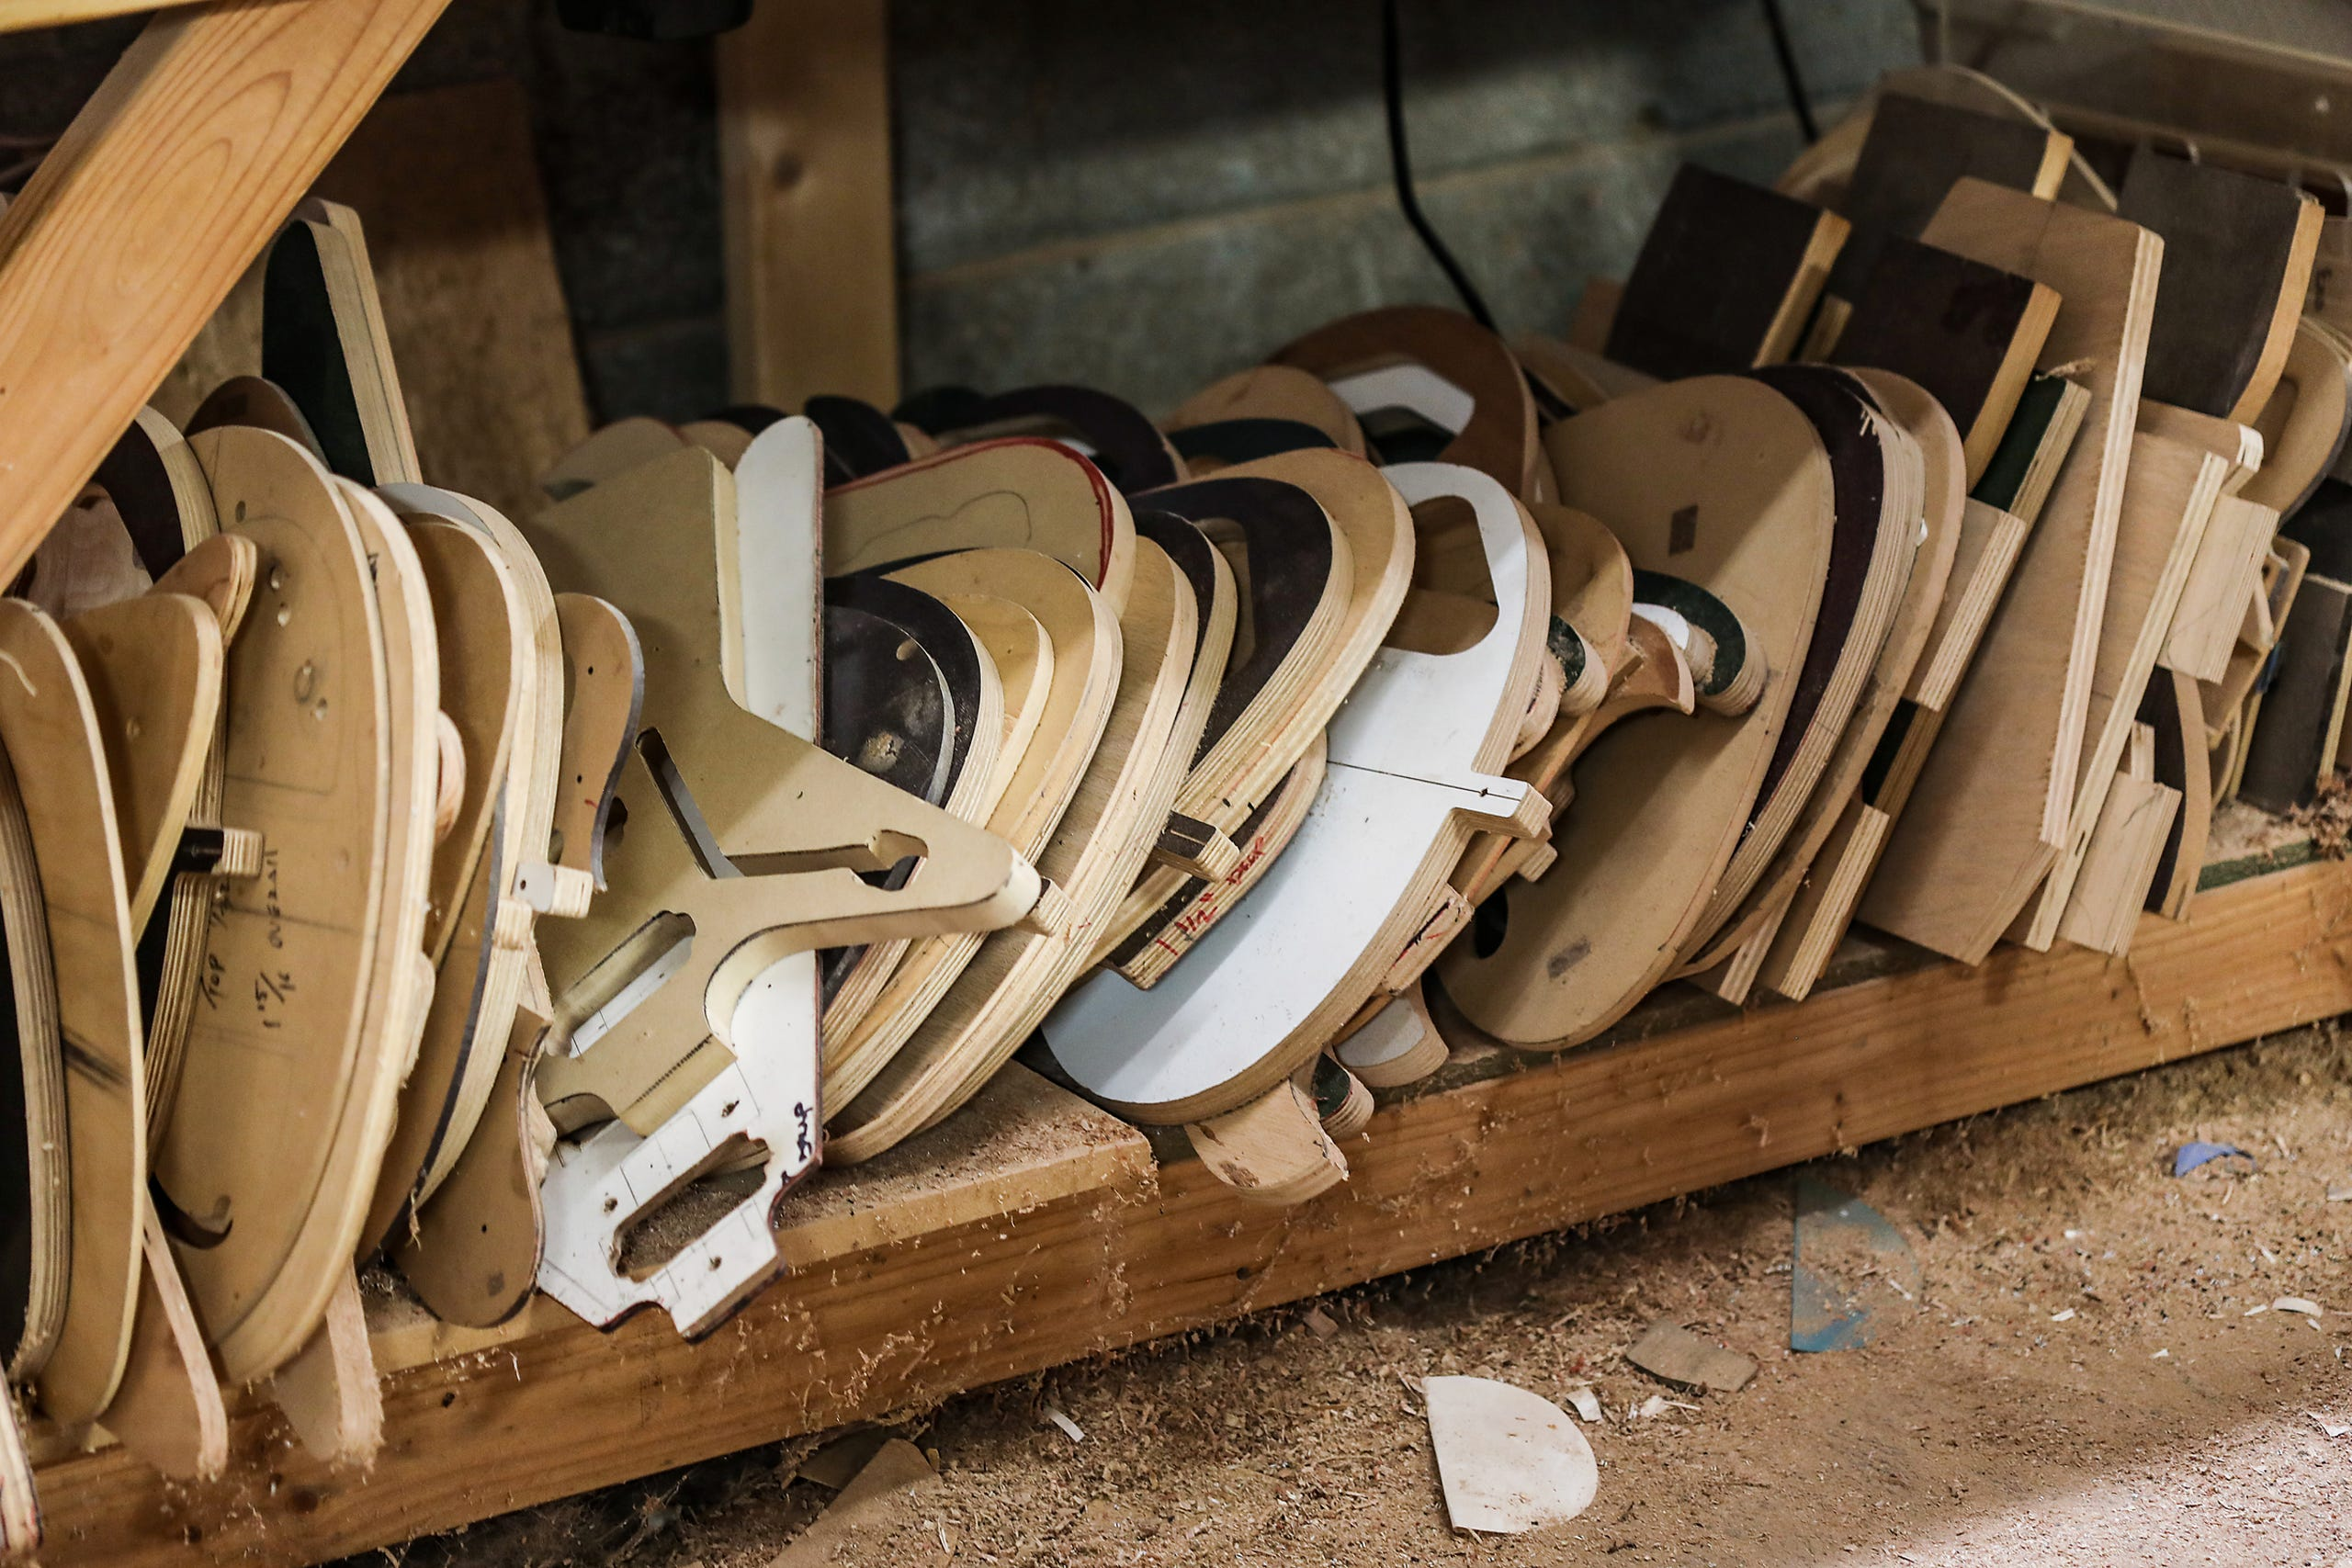 """Guitar bodies line the bottom shelf of Gabriel Currie's woodworking table in his Echopark Guitars' studio in the Old Redford neighborhood of Detroit on Nov. 12, 2020. Currie recently donated """"The Salt of Detroit"""" guitar that he made from 100-year-old trees submerged in Lake Michigan to Ann Delisi of WDET radio. The electric guitar will be raffled off and features drawings of famous guitarists created by Detroit artist Sabrina Nelson."""